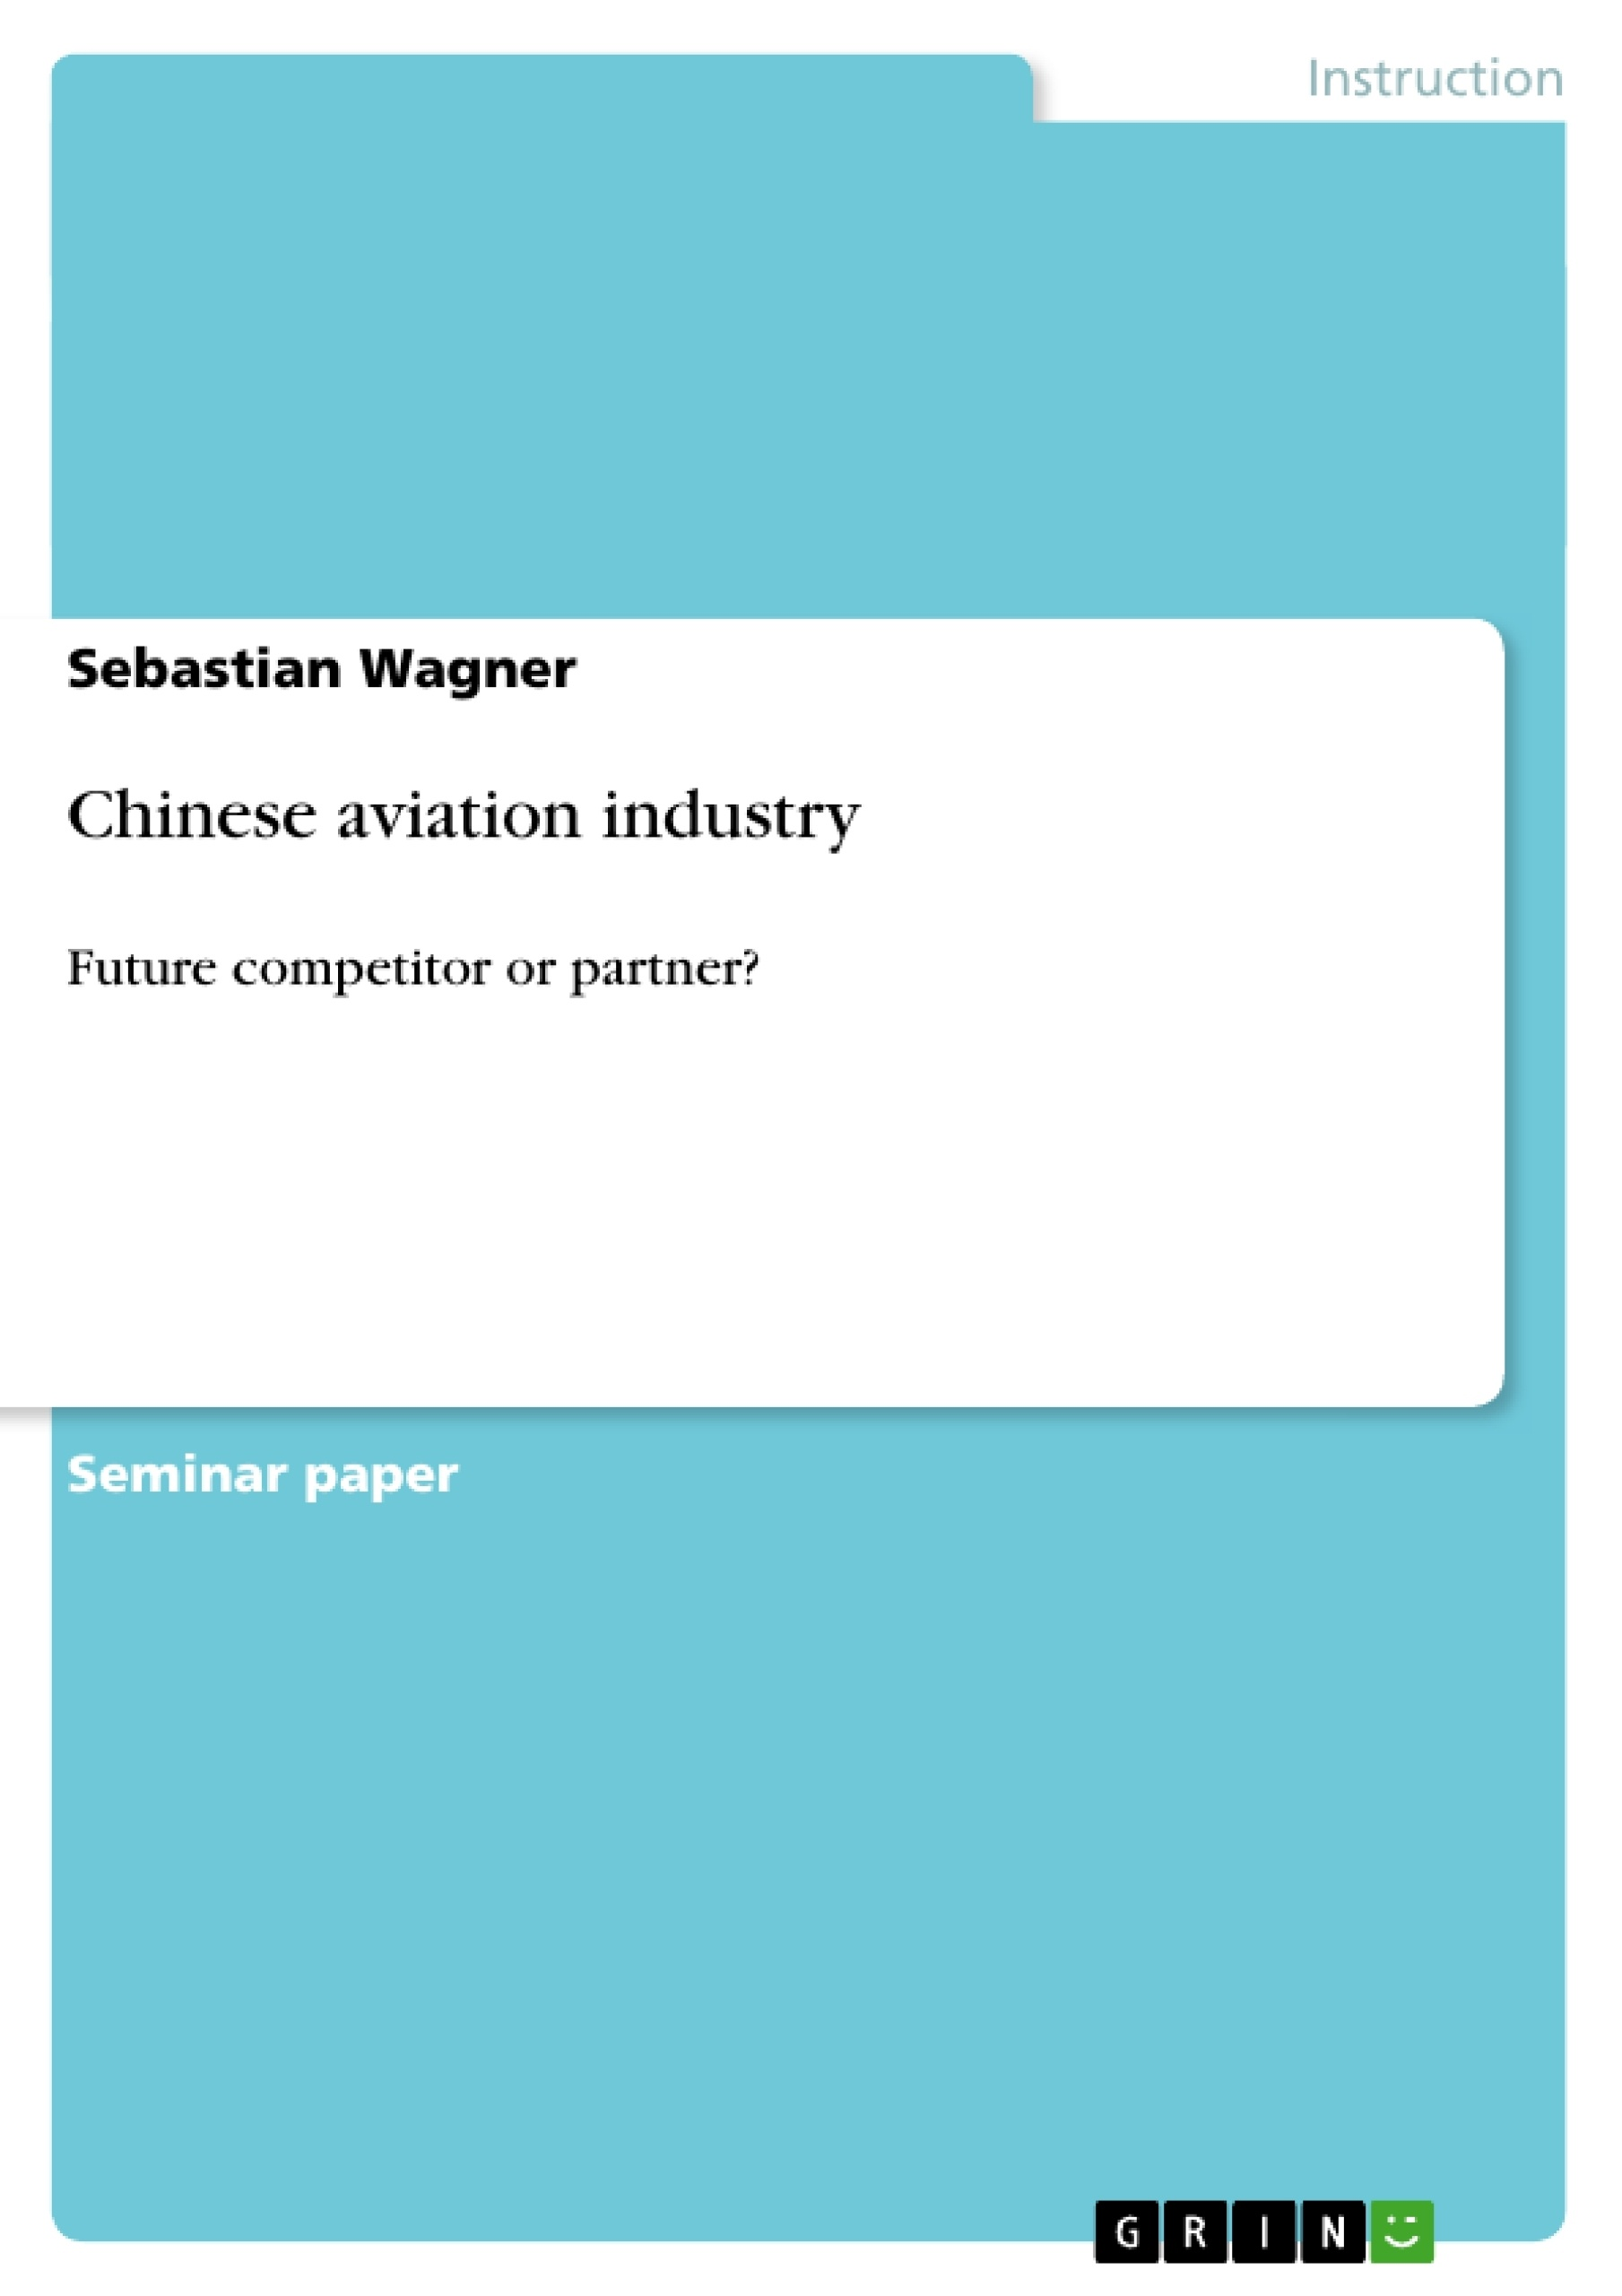 master thesis aviation Dissertation on aviation all phd students and postgraduate aviation students are required to submit dissertations for degree completion these researches require much research and review of the past literature.